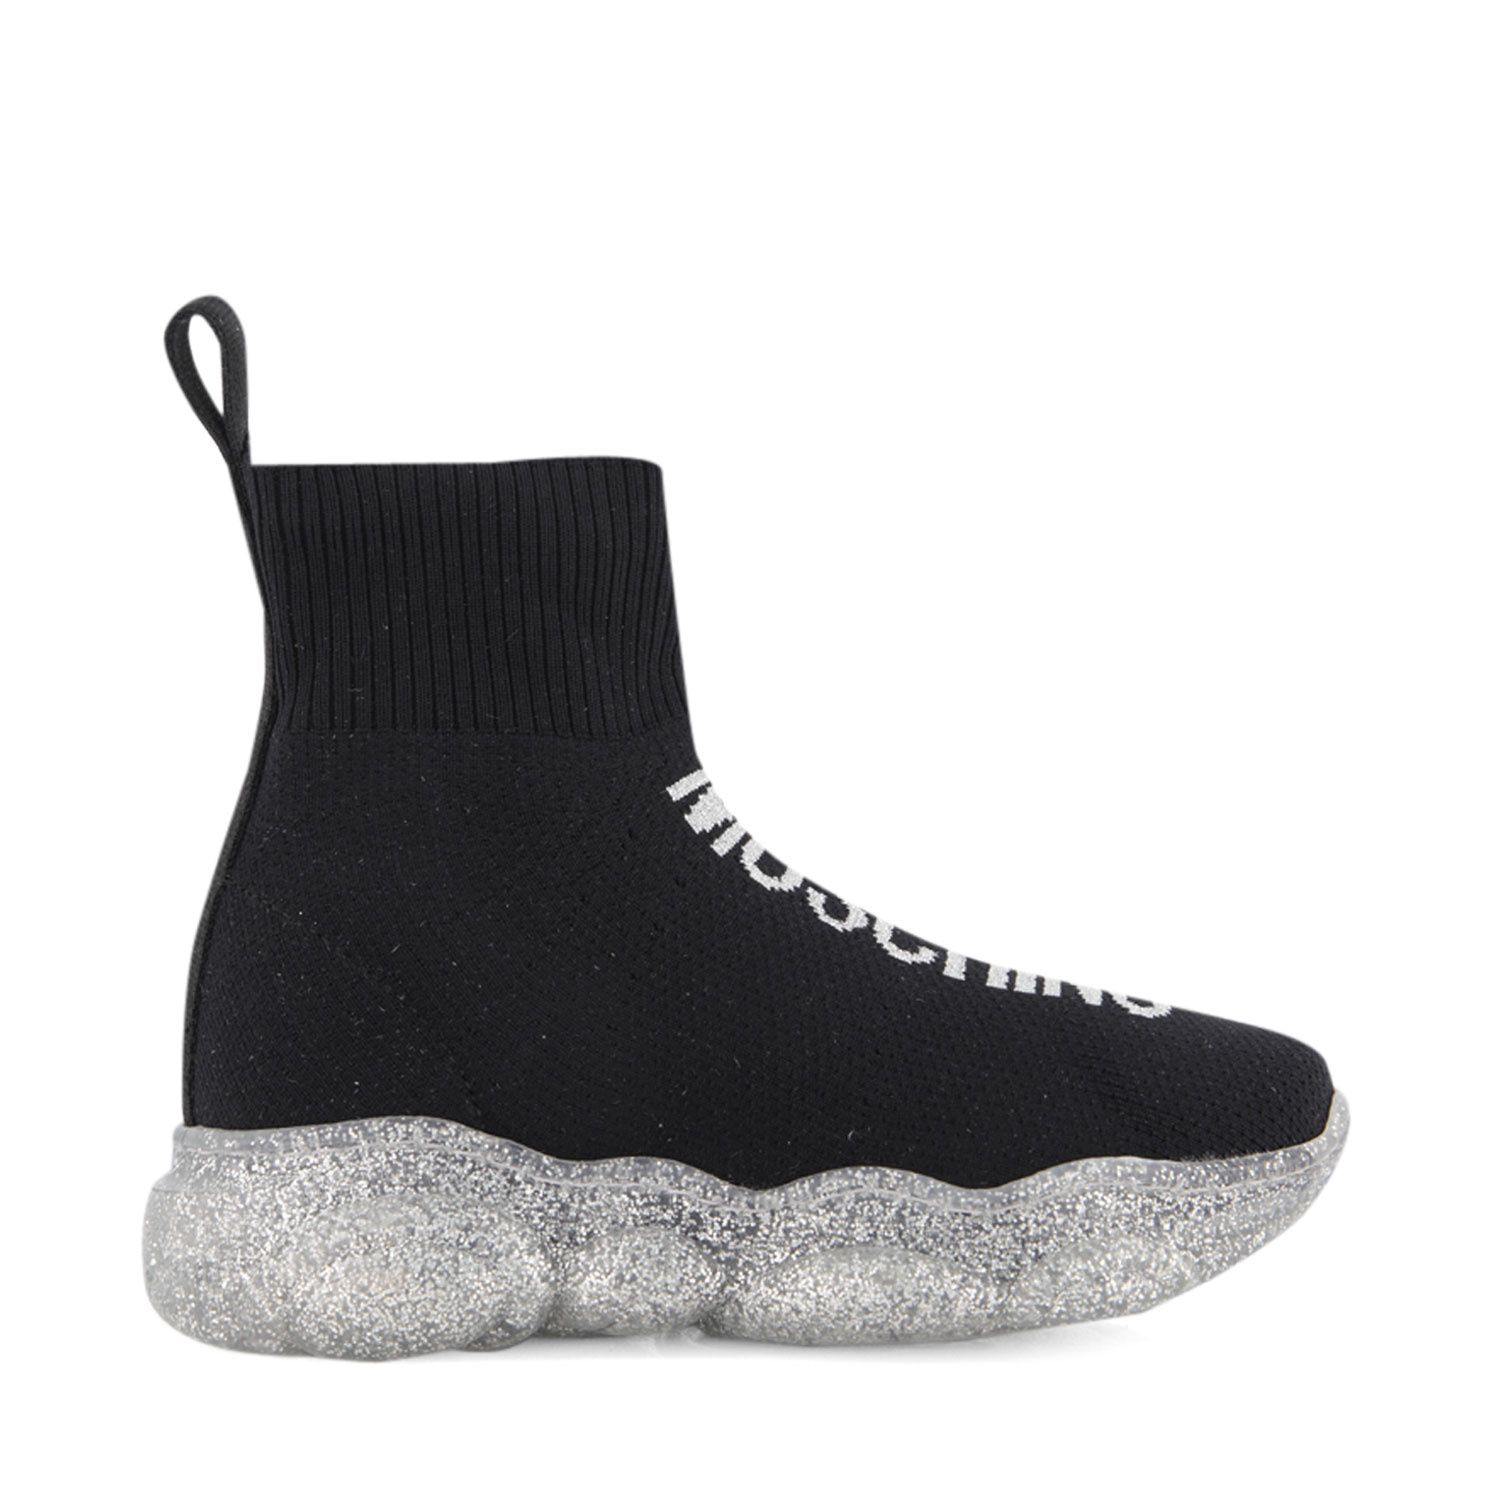 Picture of Moschino 65748 kids boots silver